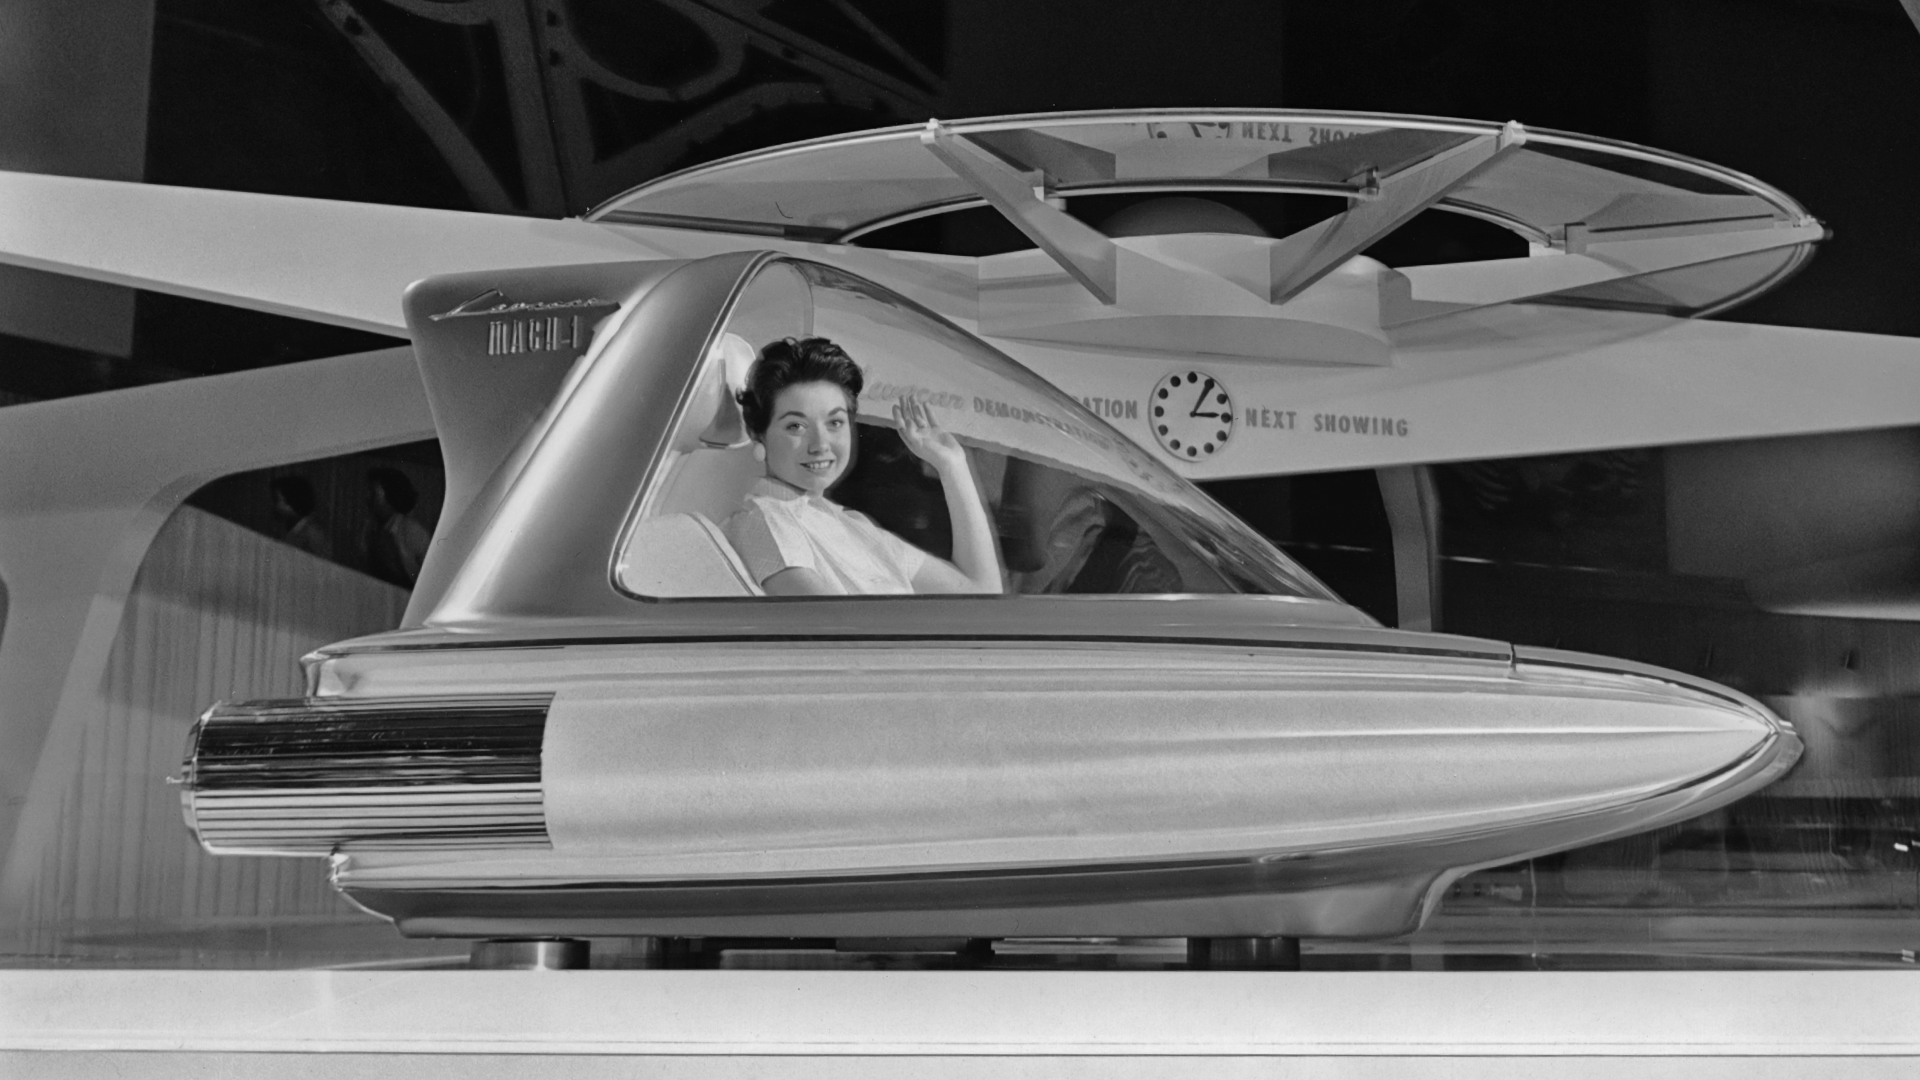 A sky full of driverless flying cars in just a decade - Axios